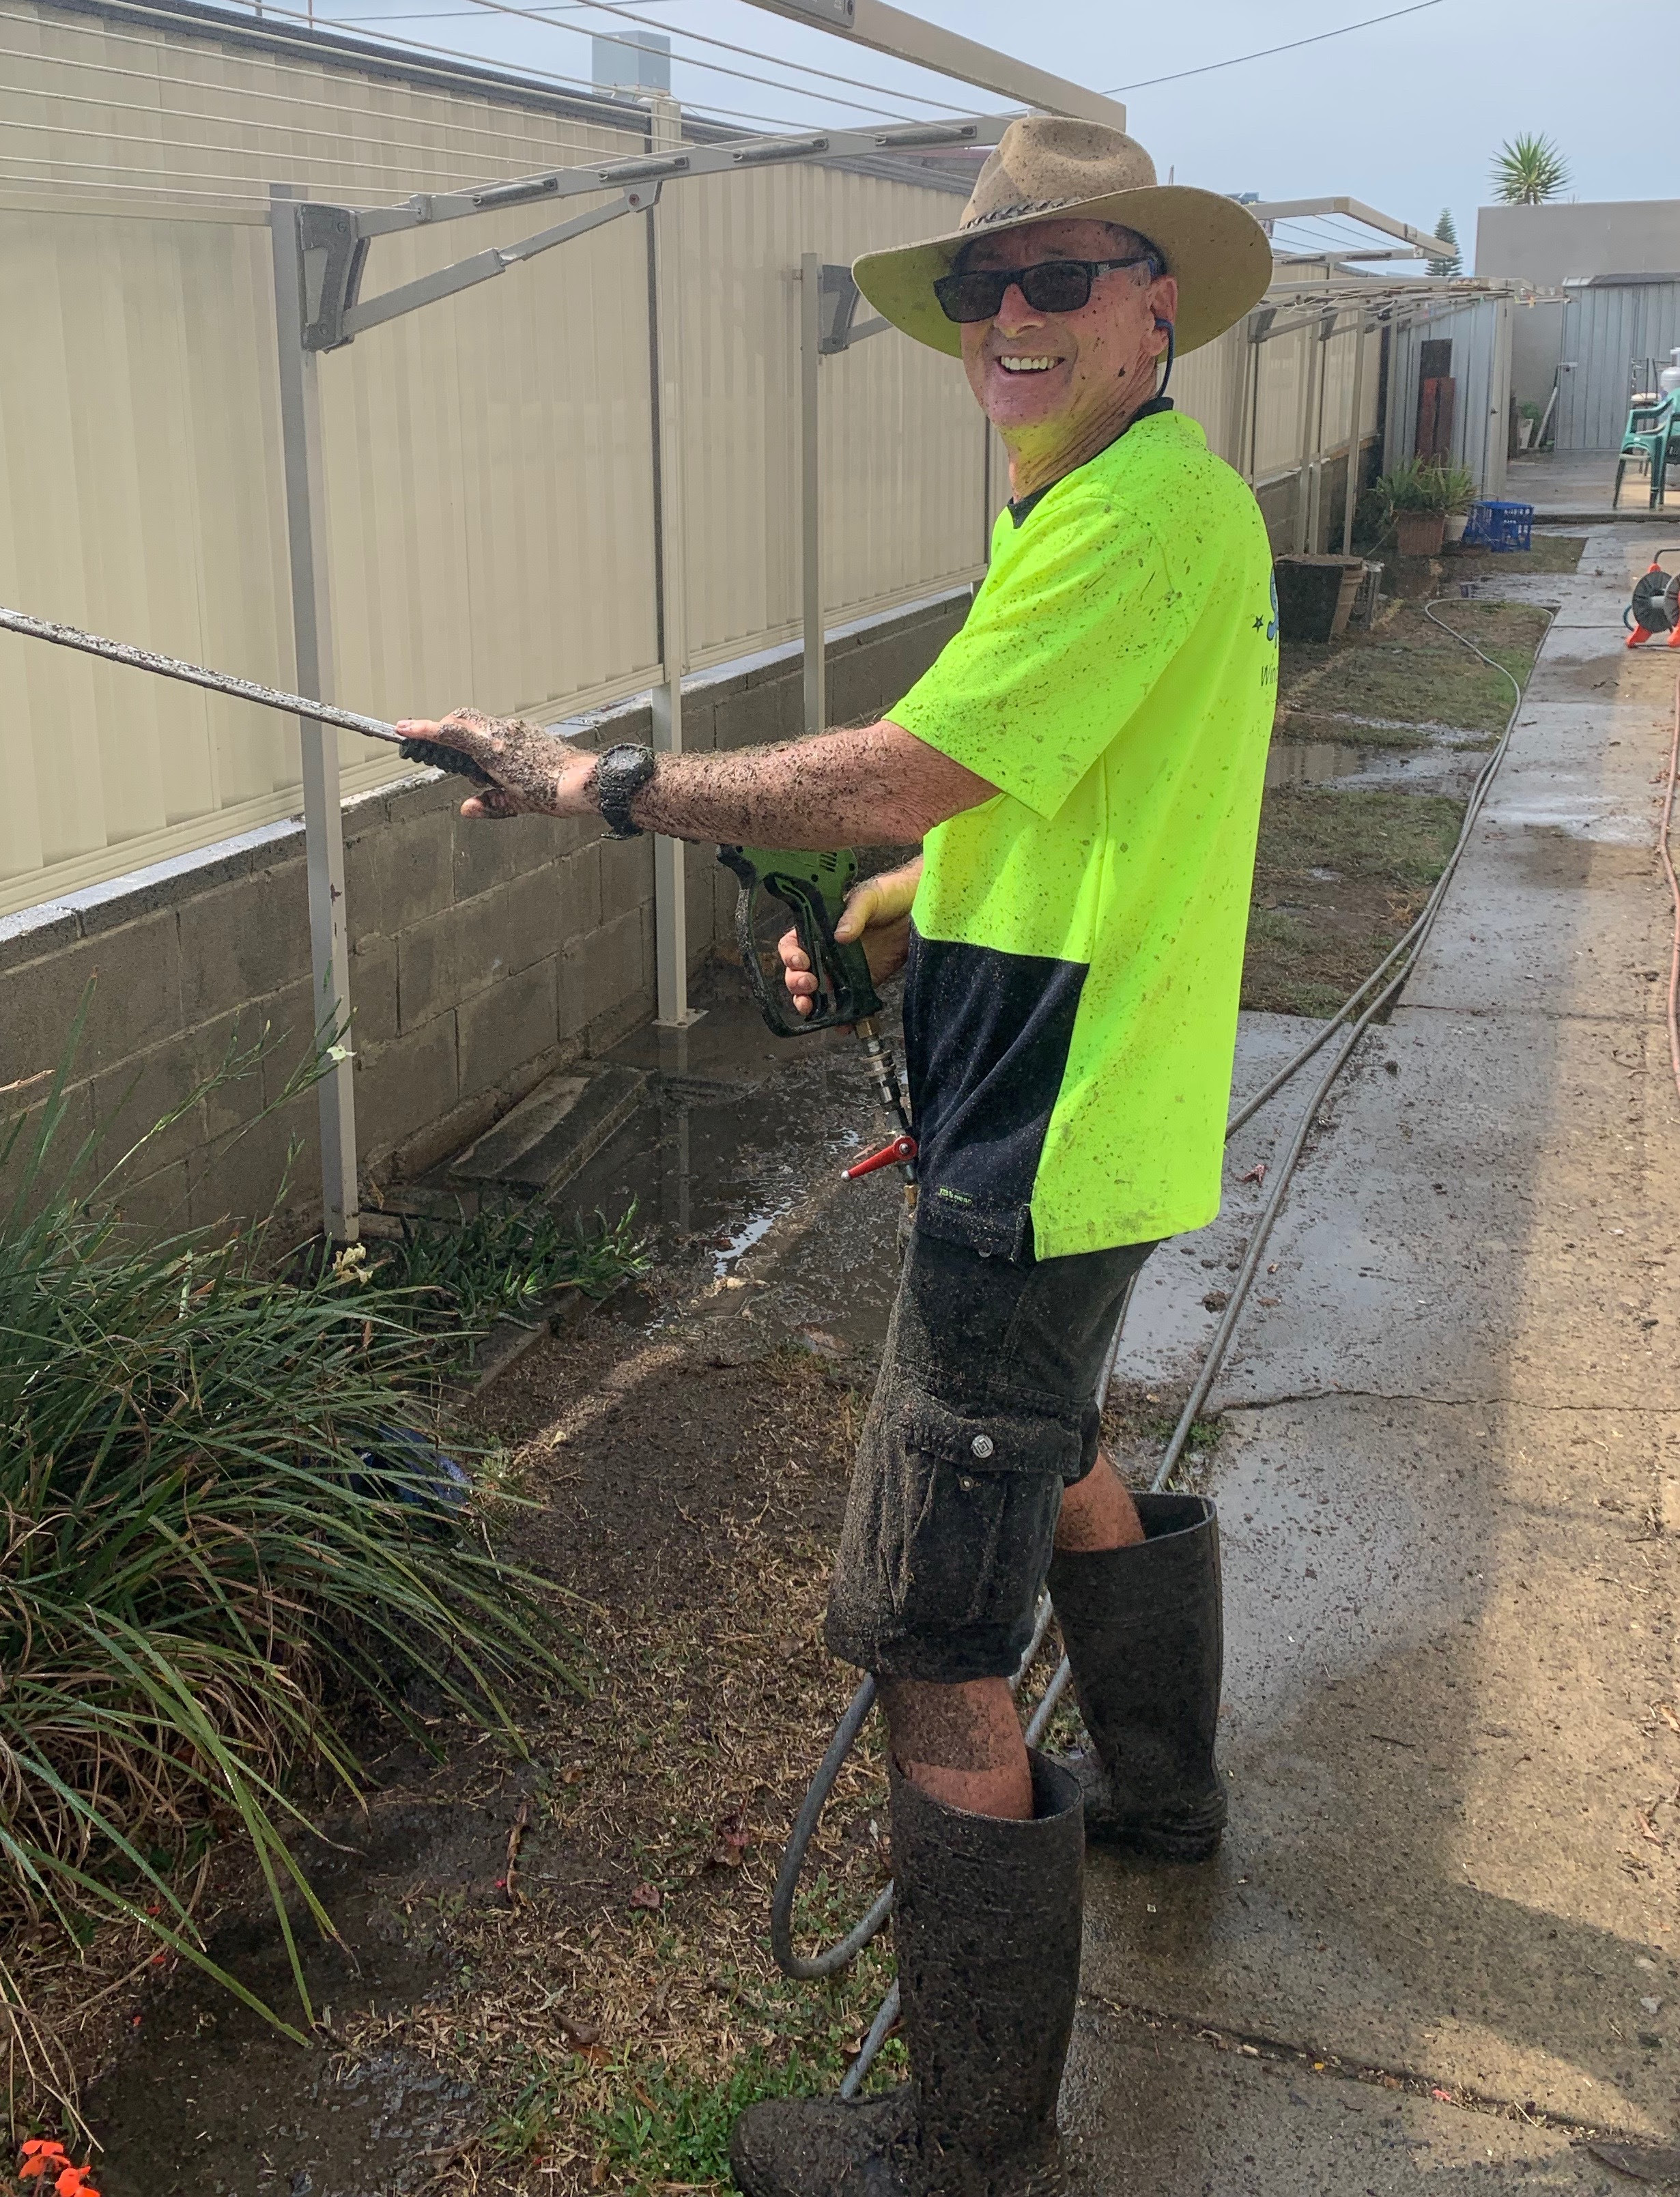 Here's a pic of Mike Salmon, the newest member of the Sparkle Team.  Mike has been cleaning windows for 20 years or more and he always has a smile on his face - just look at him here... caked in dirt and loving every minute of it.